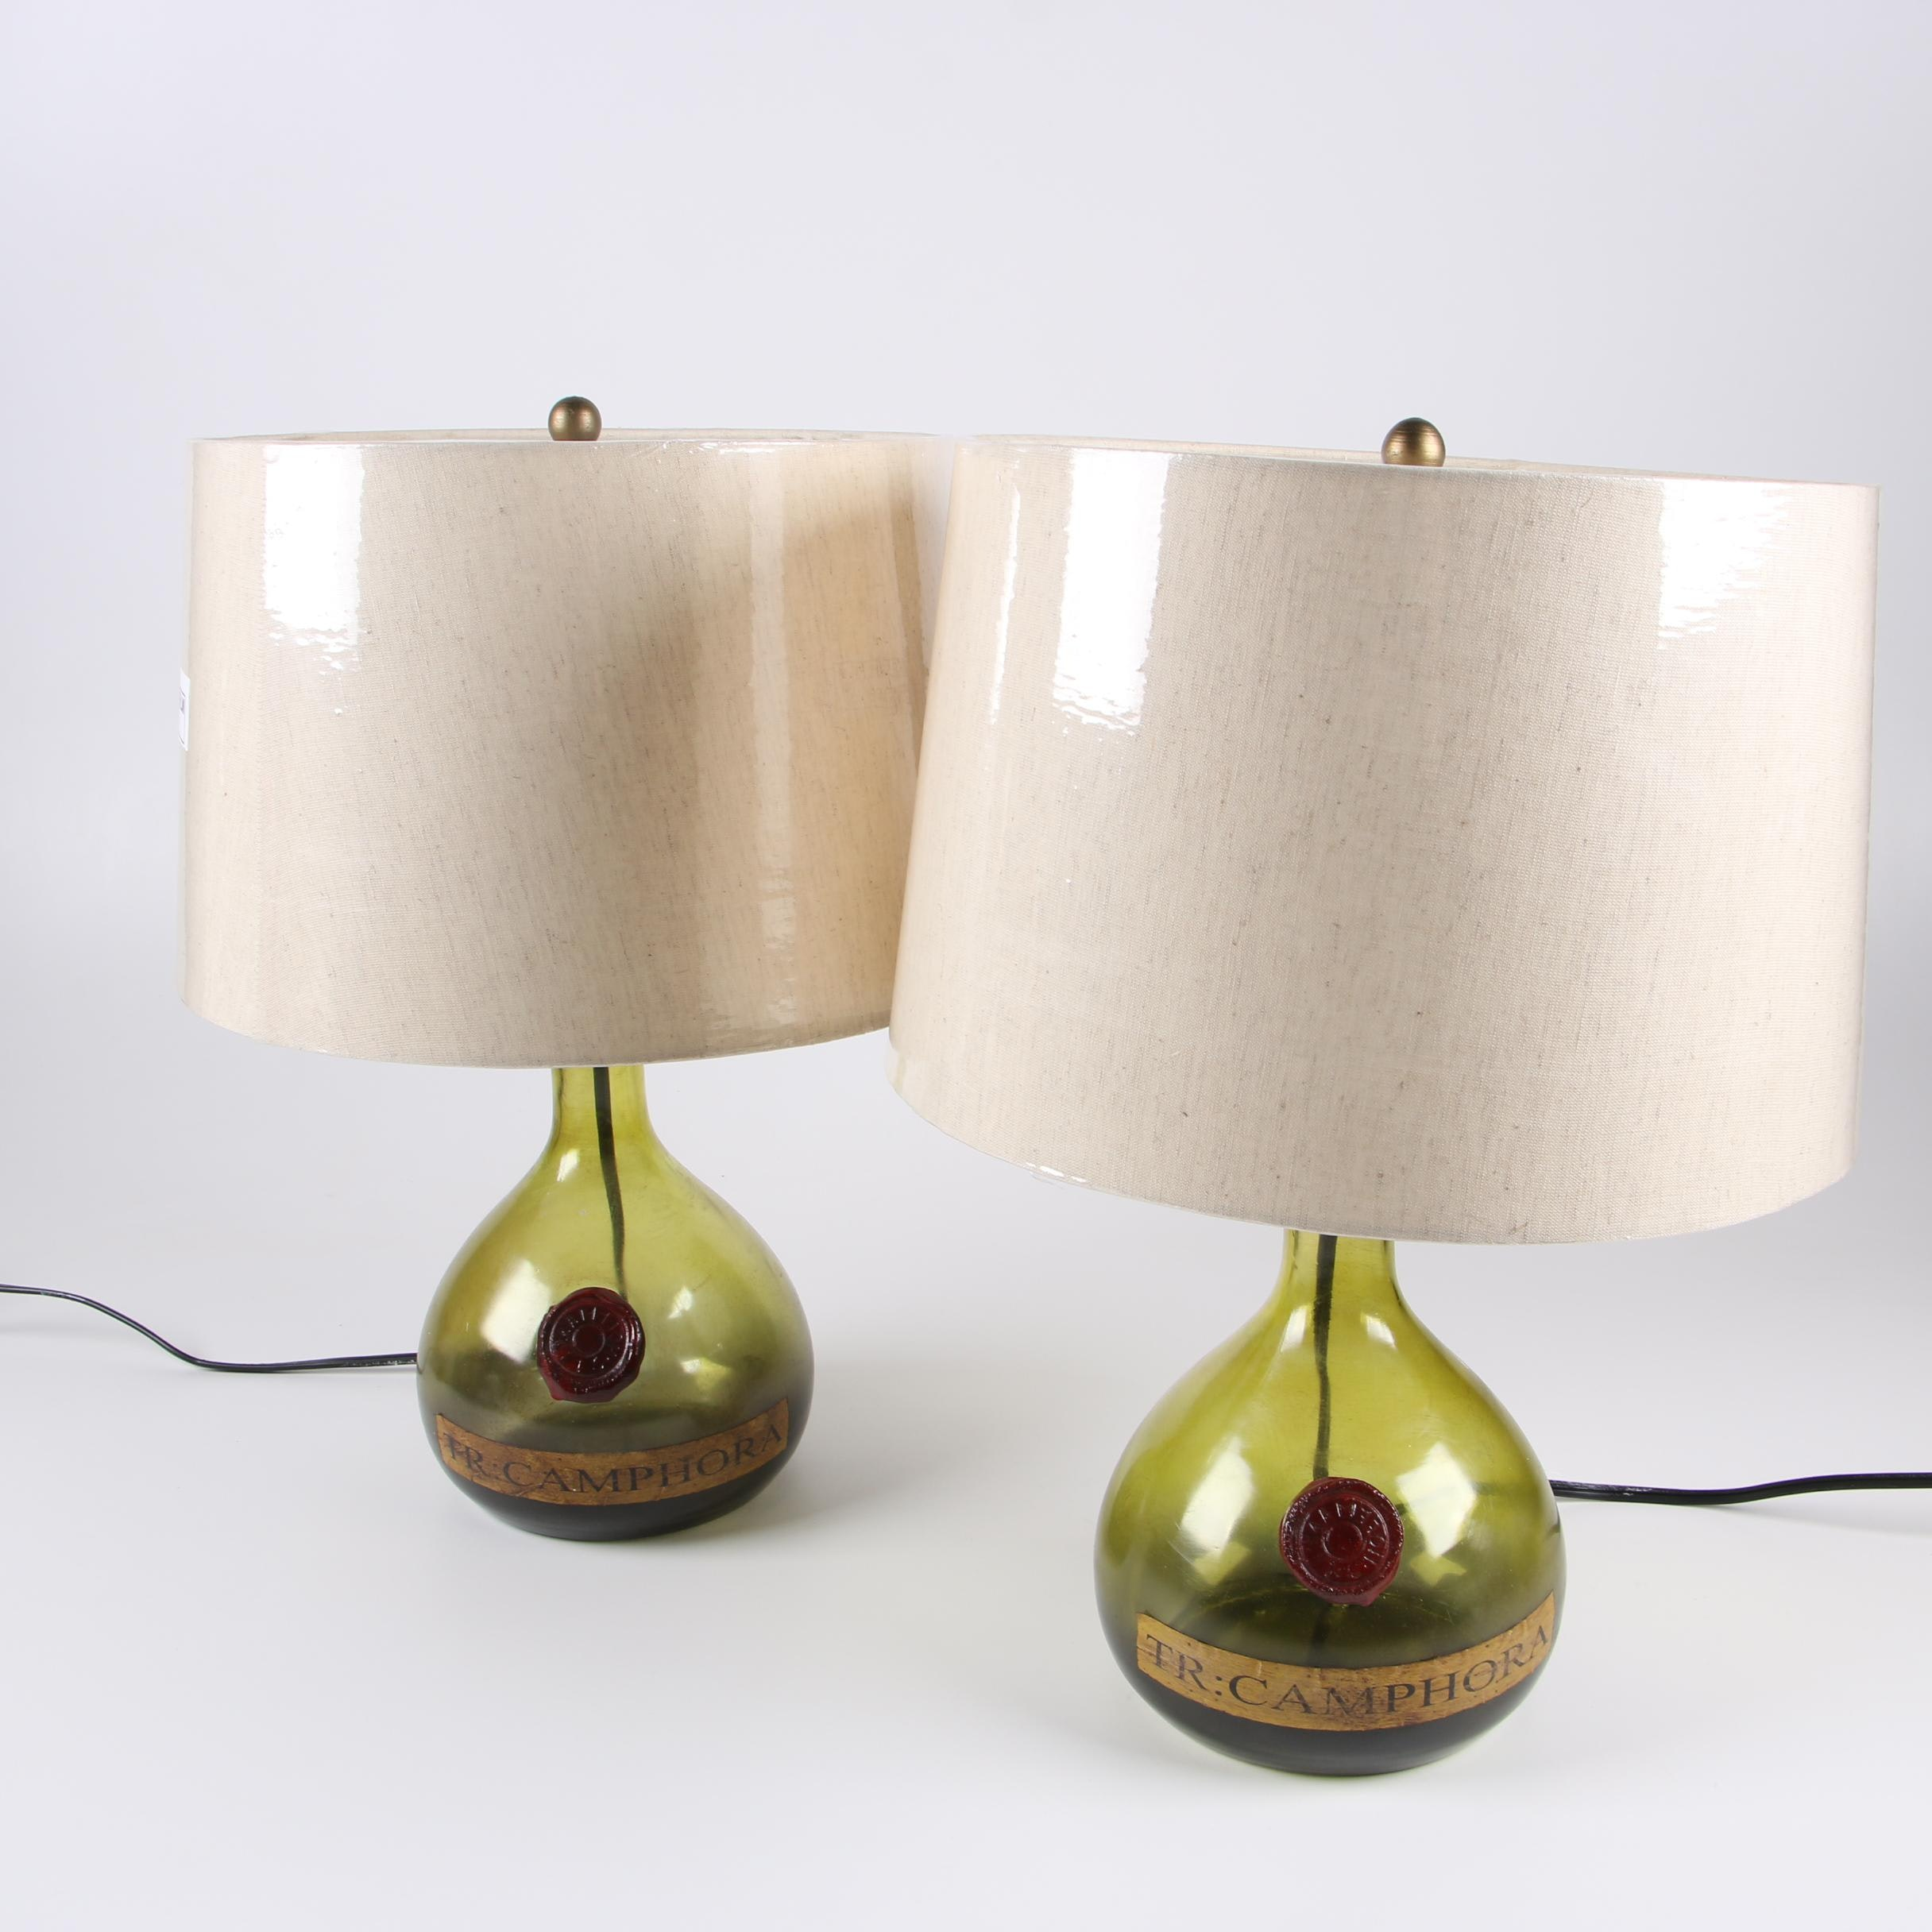 Reproduction Green Tincture of Camphor Carboy Bottle Table Lamps, 2012